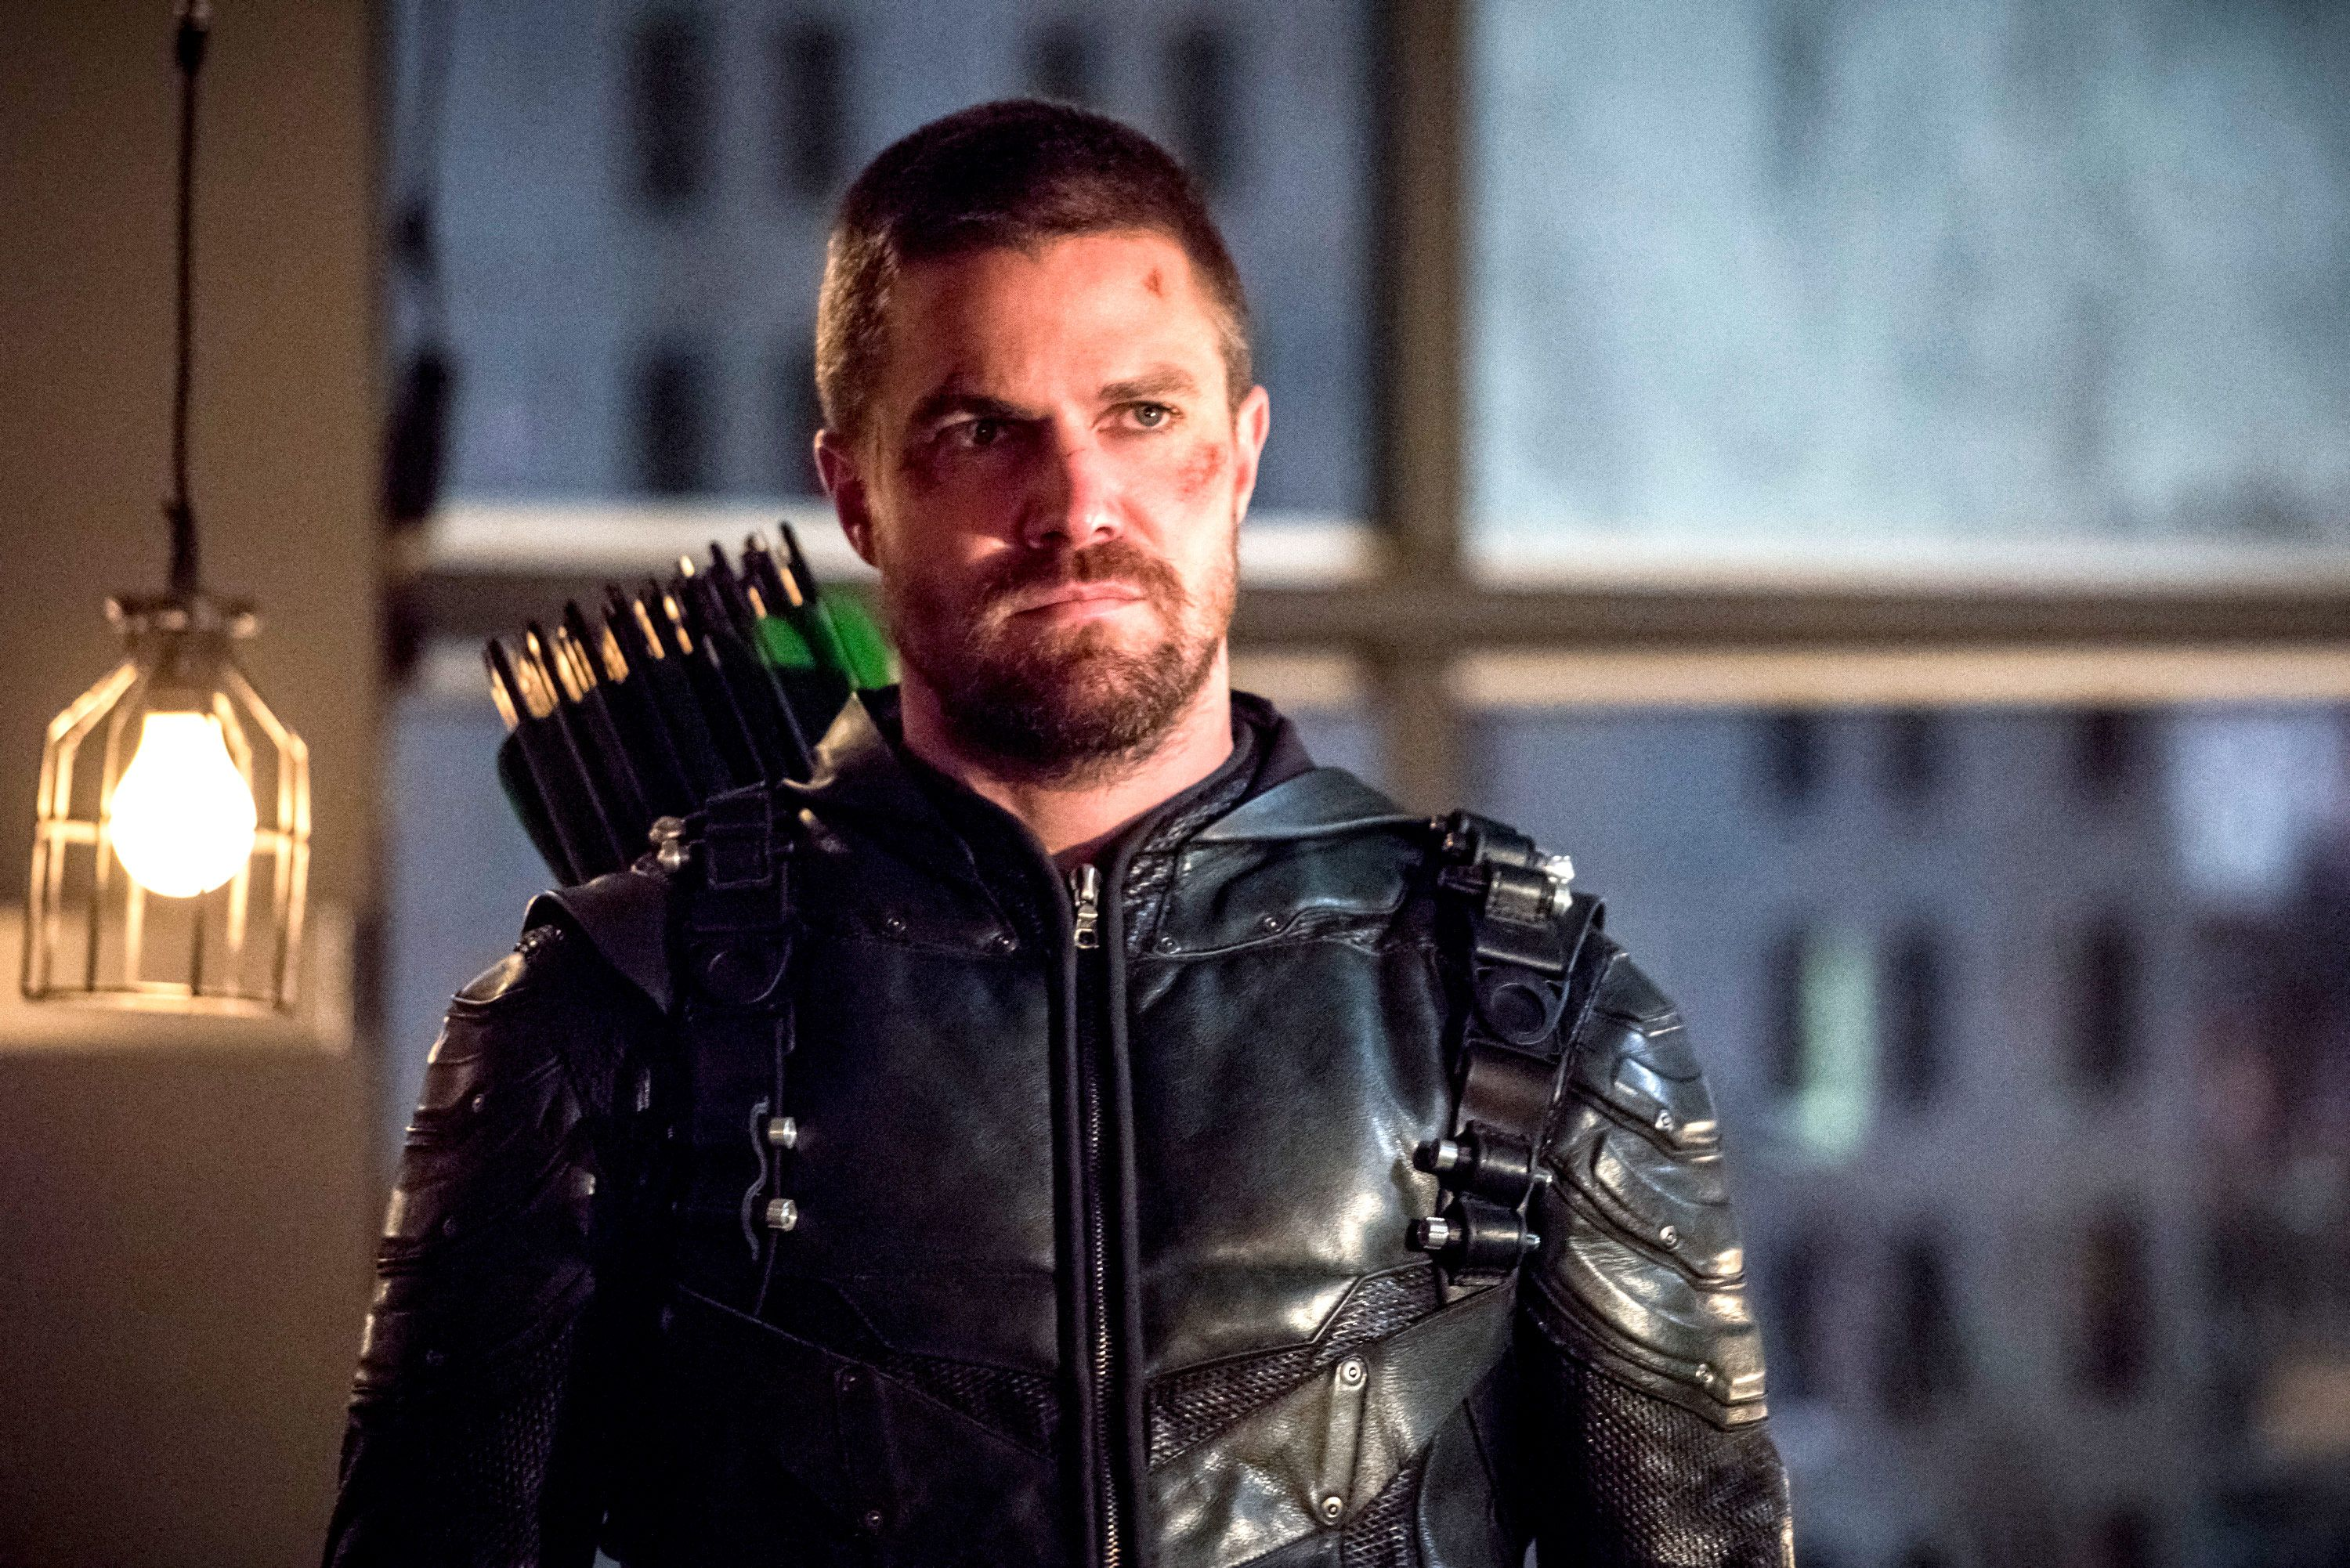 Arrow star discusses how Crisis On Infinite Earths will affect Star City 2040